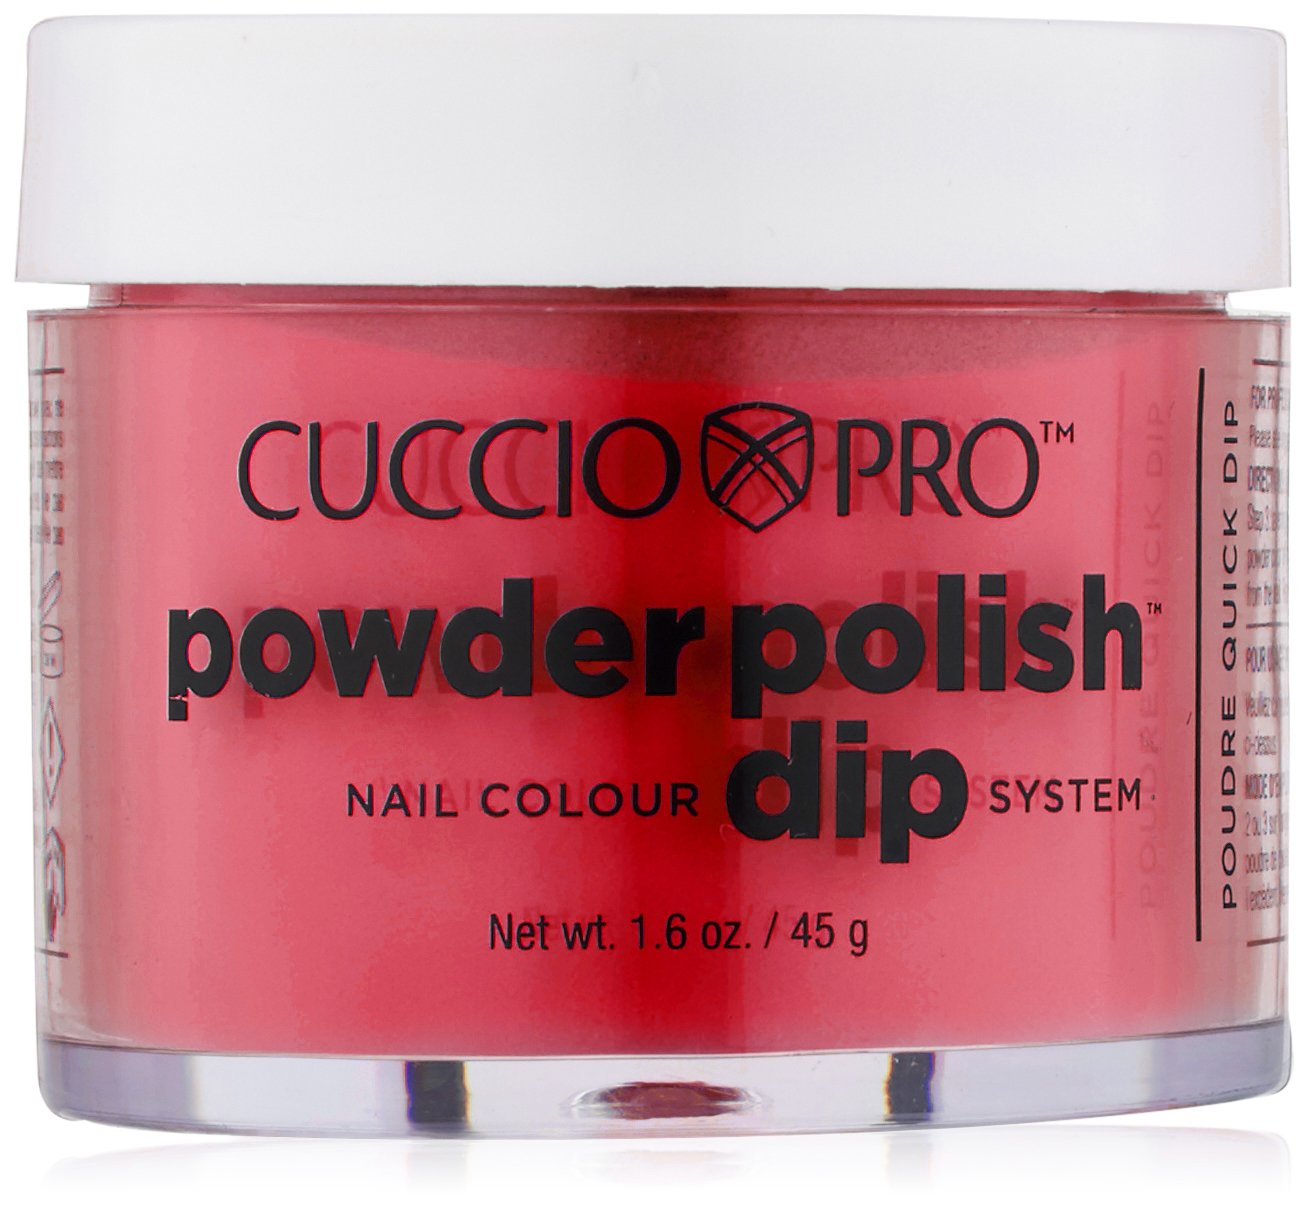 Cuccio Pro Powder Polish Dip - Candy Apple Red - Nail Lacquer for Manicures & Pedicures, Easy & Fast Application/Removal - No LED/UV Light Needed - Non-Toxic, Odorless, Highly Pigmented - 2 oz